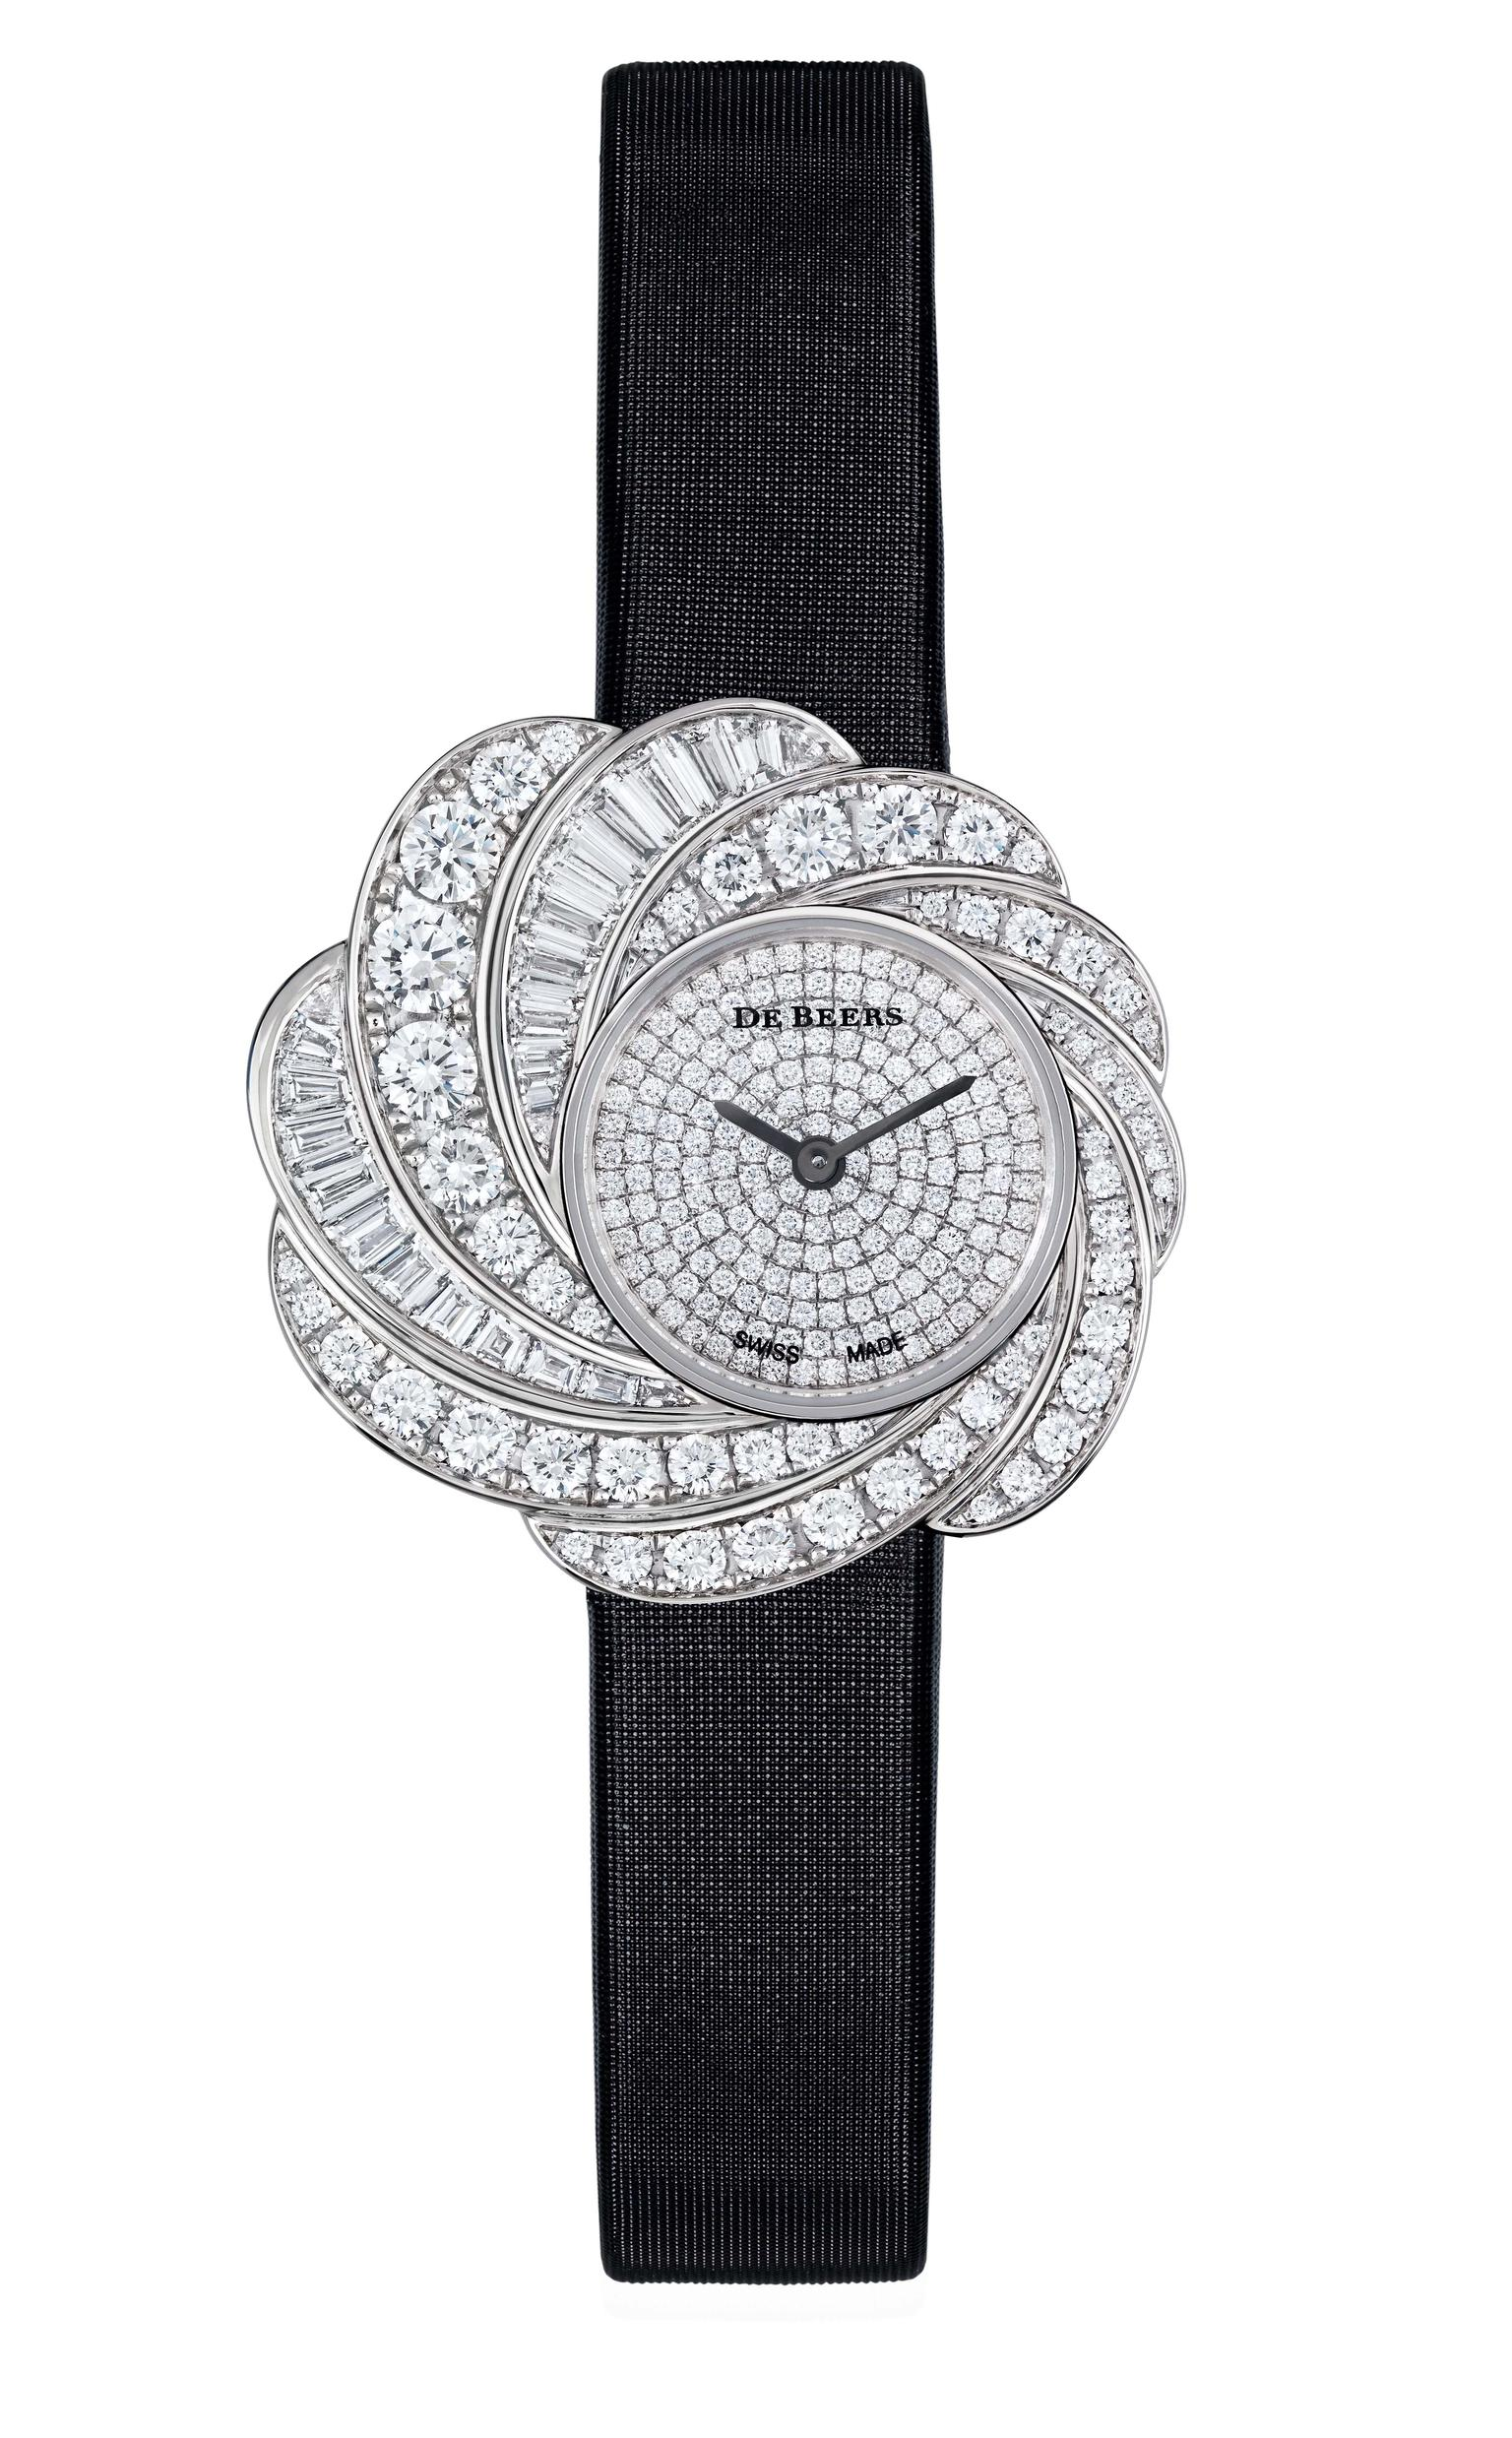 De Beers Aria diamond watch set with round brilliant and baguette-cut diamonds totalling 4.35ct in white gold, with a fully diamond pavéd dial and black satin strap (£POA).